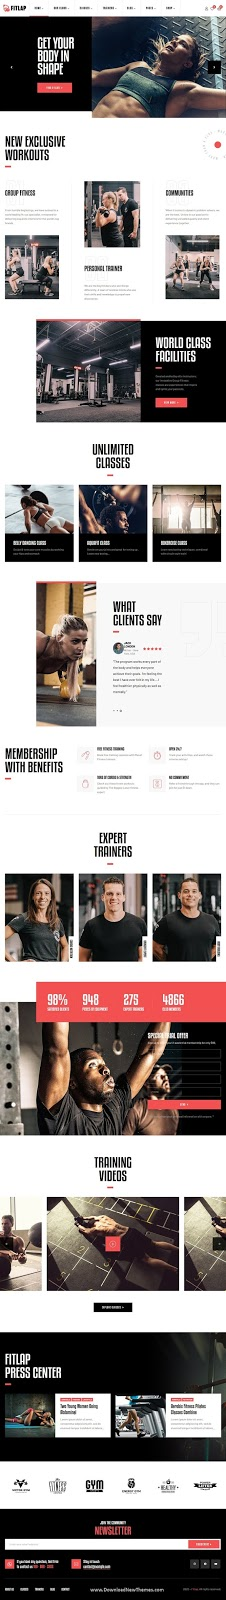 Best Gym & Fitness Club WordPress Template